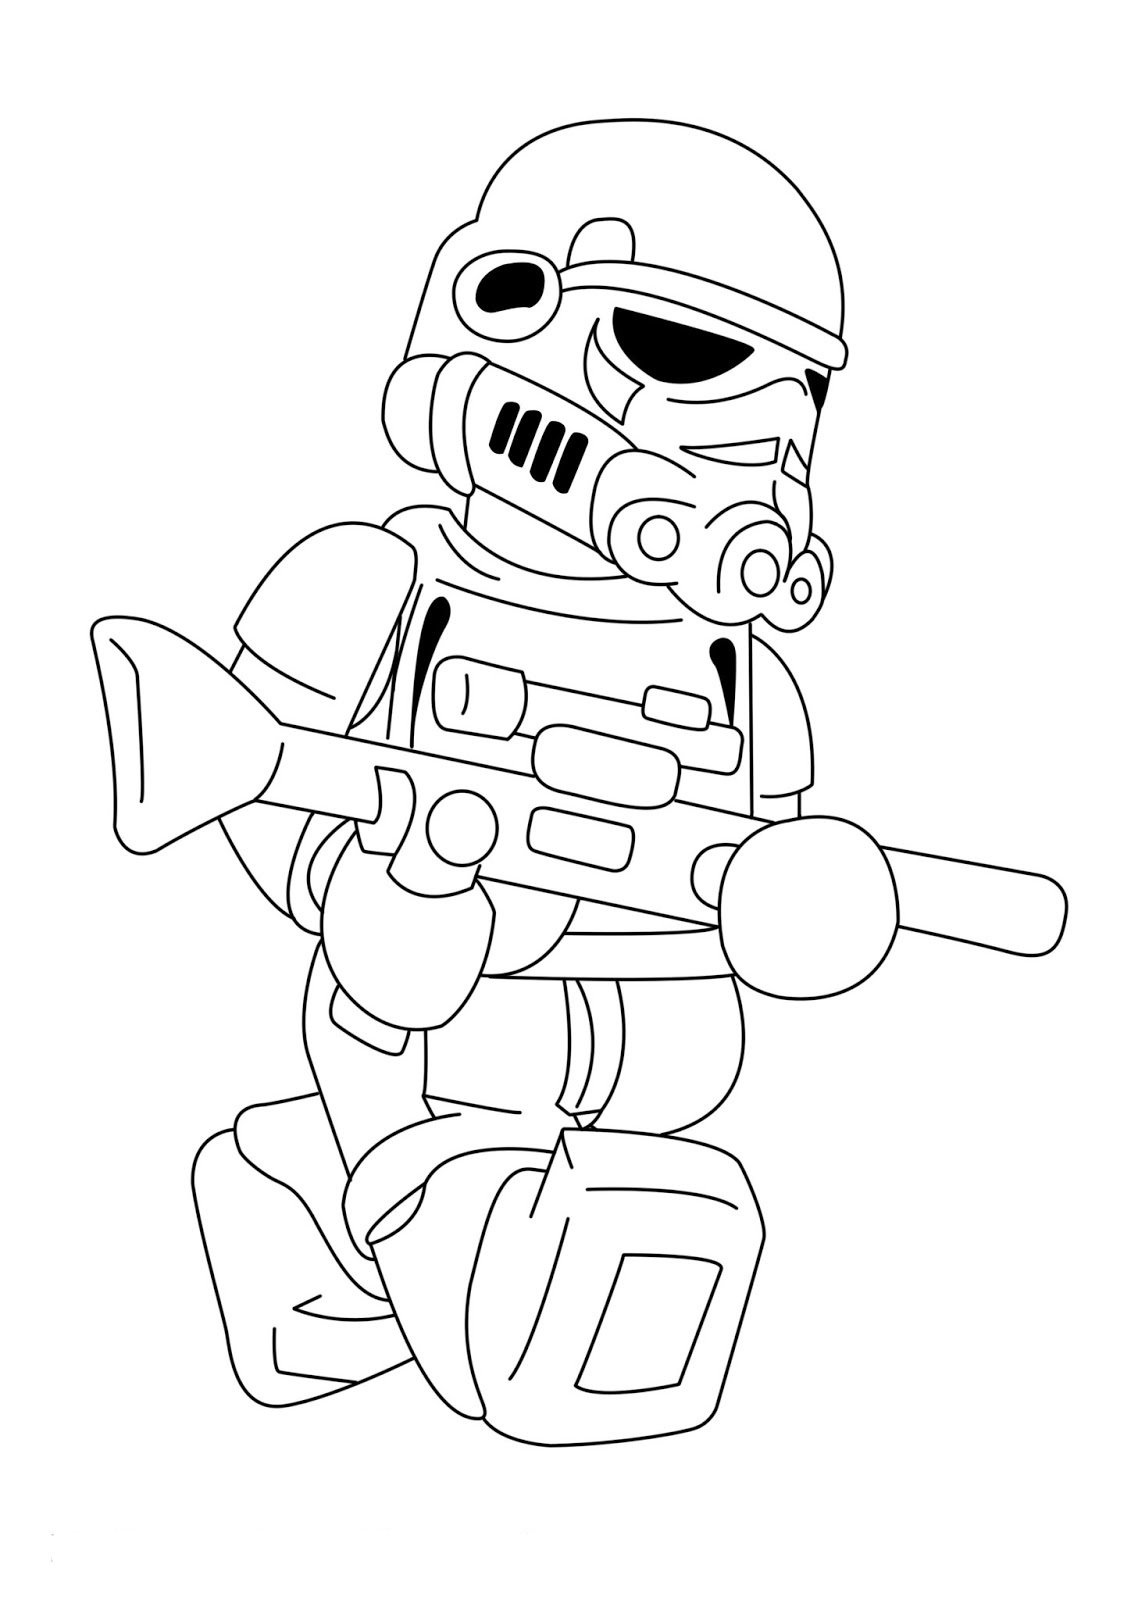 coloring star images star wars spaceships coloring page star wars spaceships images coloring star